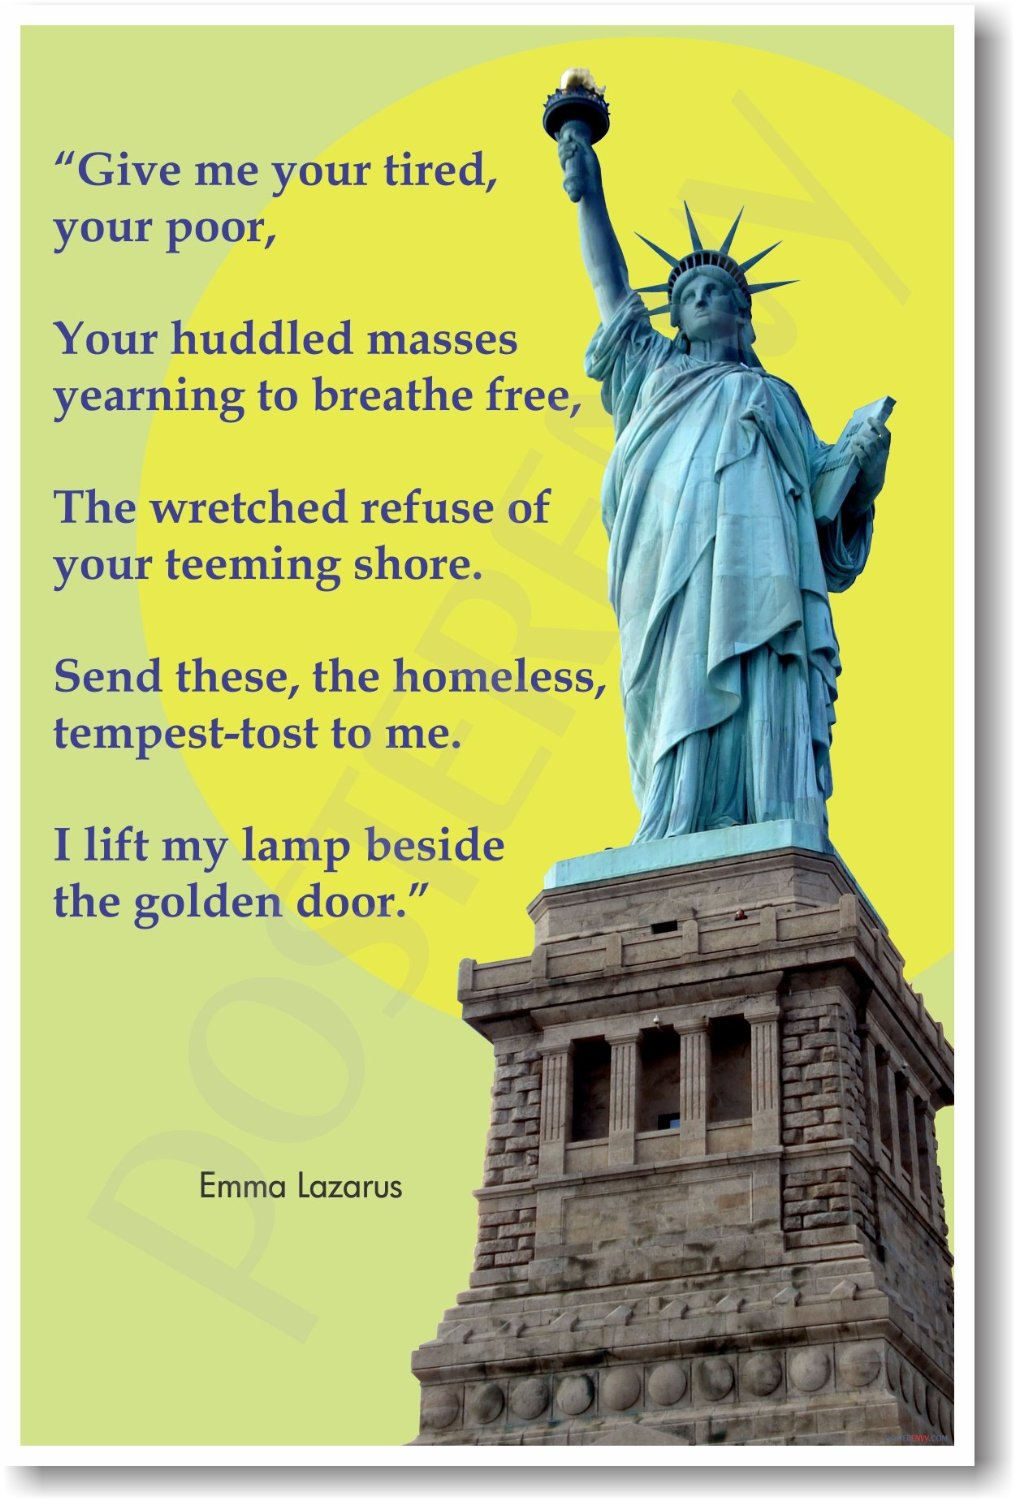 Give me your poor statue of liberty 2